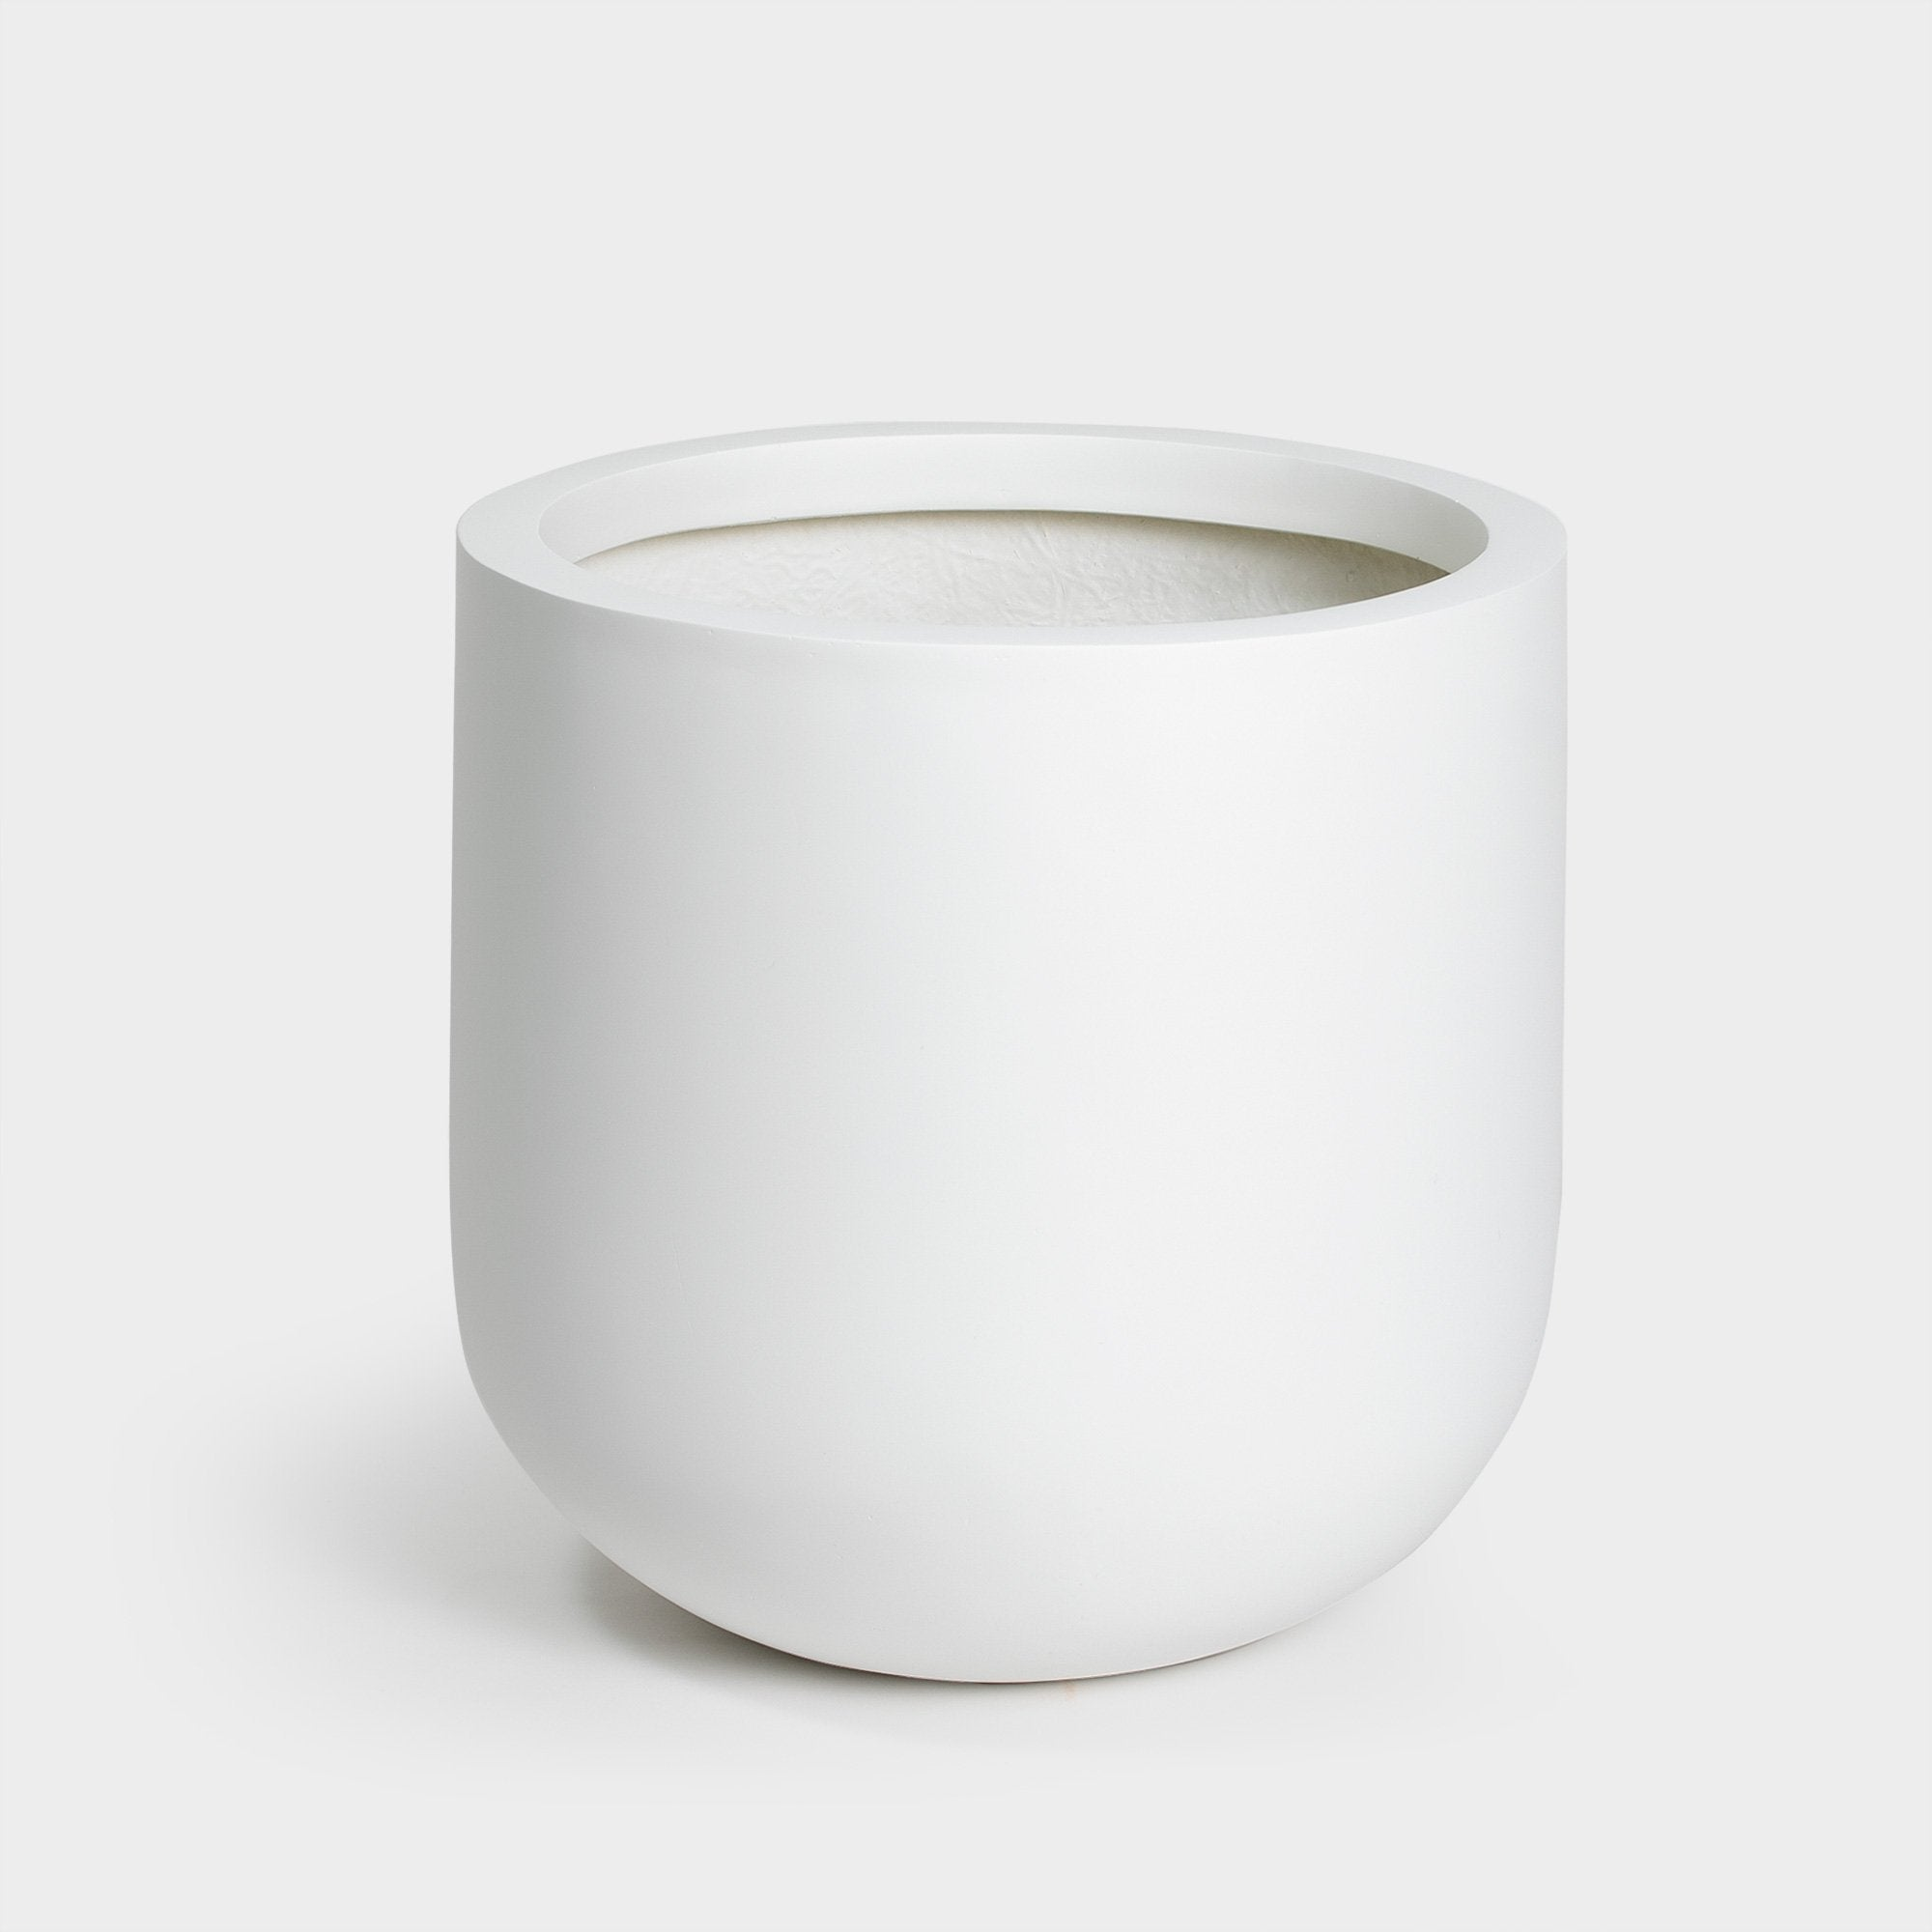 White large planter with curved bottom for plants in 14